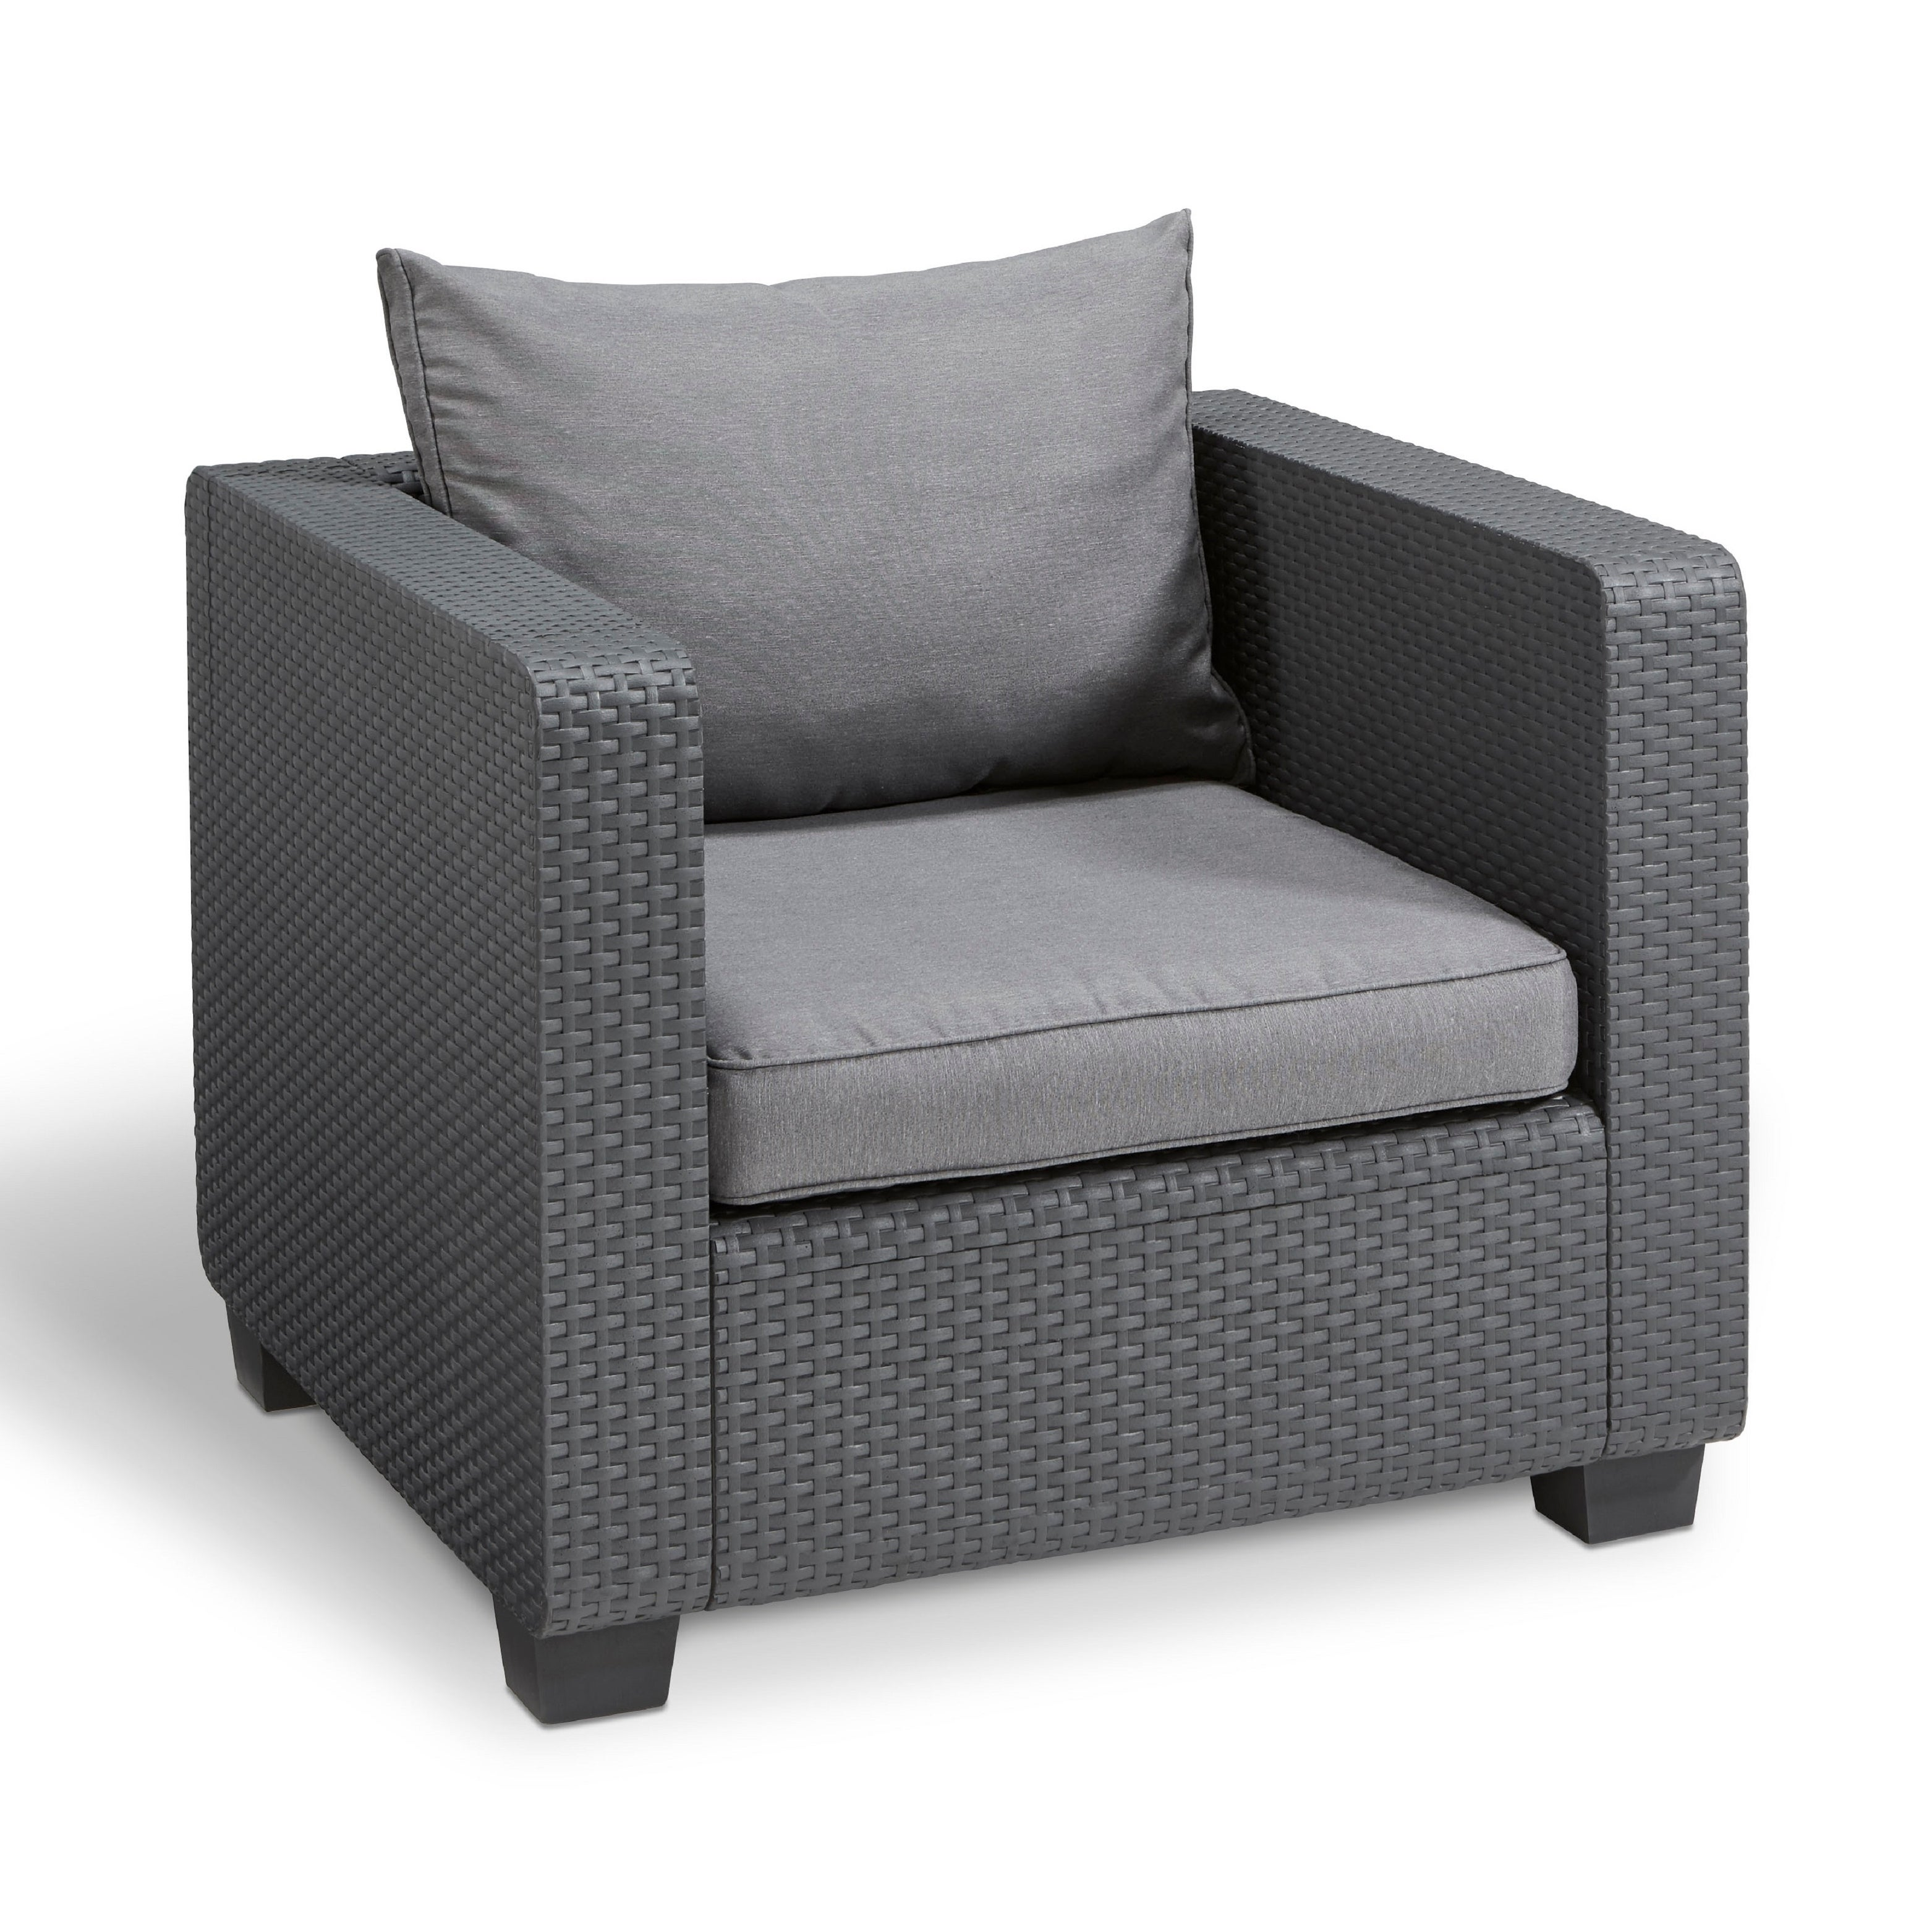 Shop Keter Salta All Weather Outdoor Patio Armchair With Sunbrella Cushions    Free Shipping Today   Overstock.com   20309210